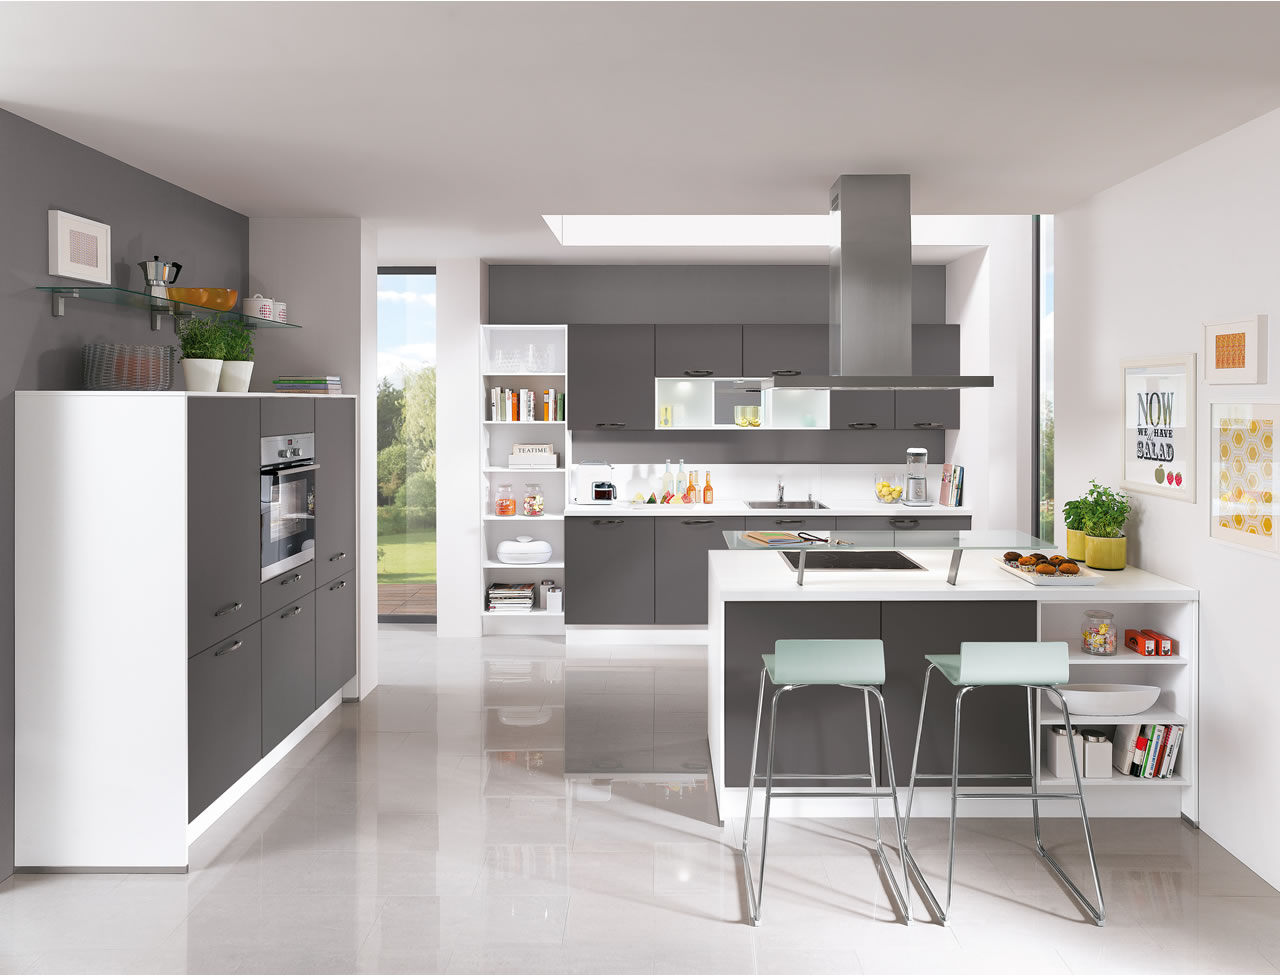 Nobilia Laser Grau I Home Kitchens Nobilia Kitchens And German Kitchens